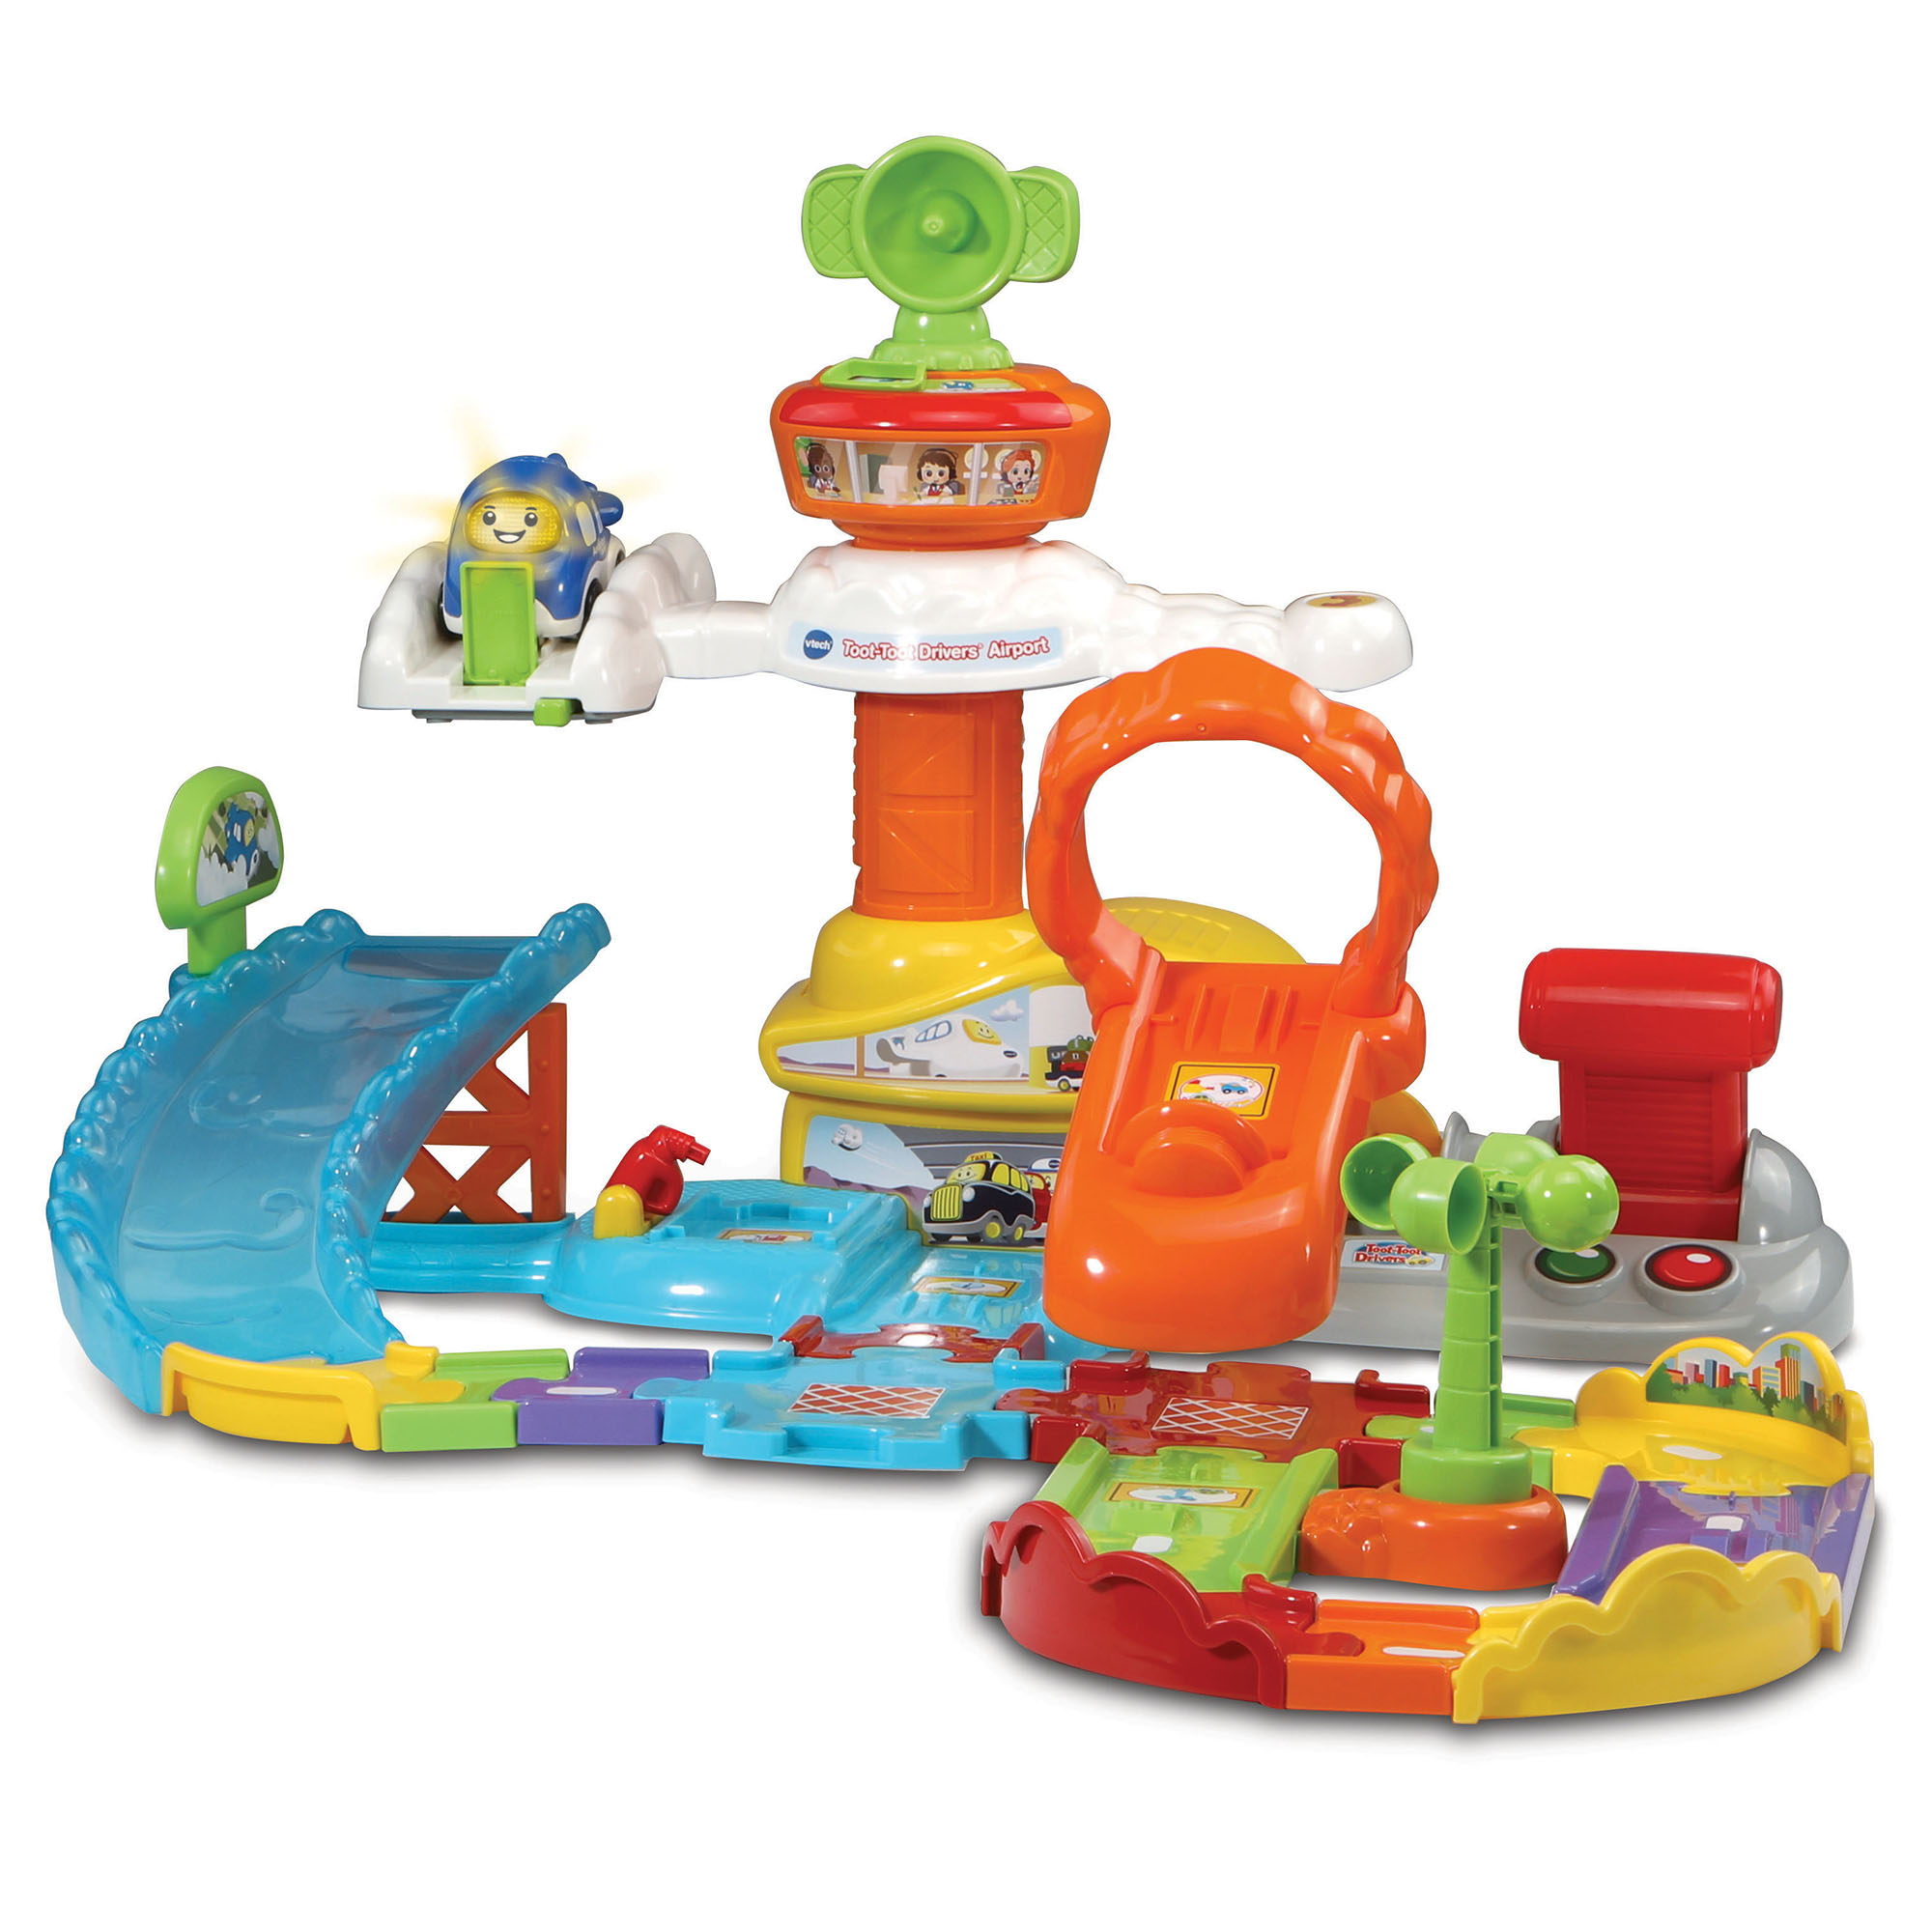 Picture of VTech Toot-Toot Drivers Airport